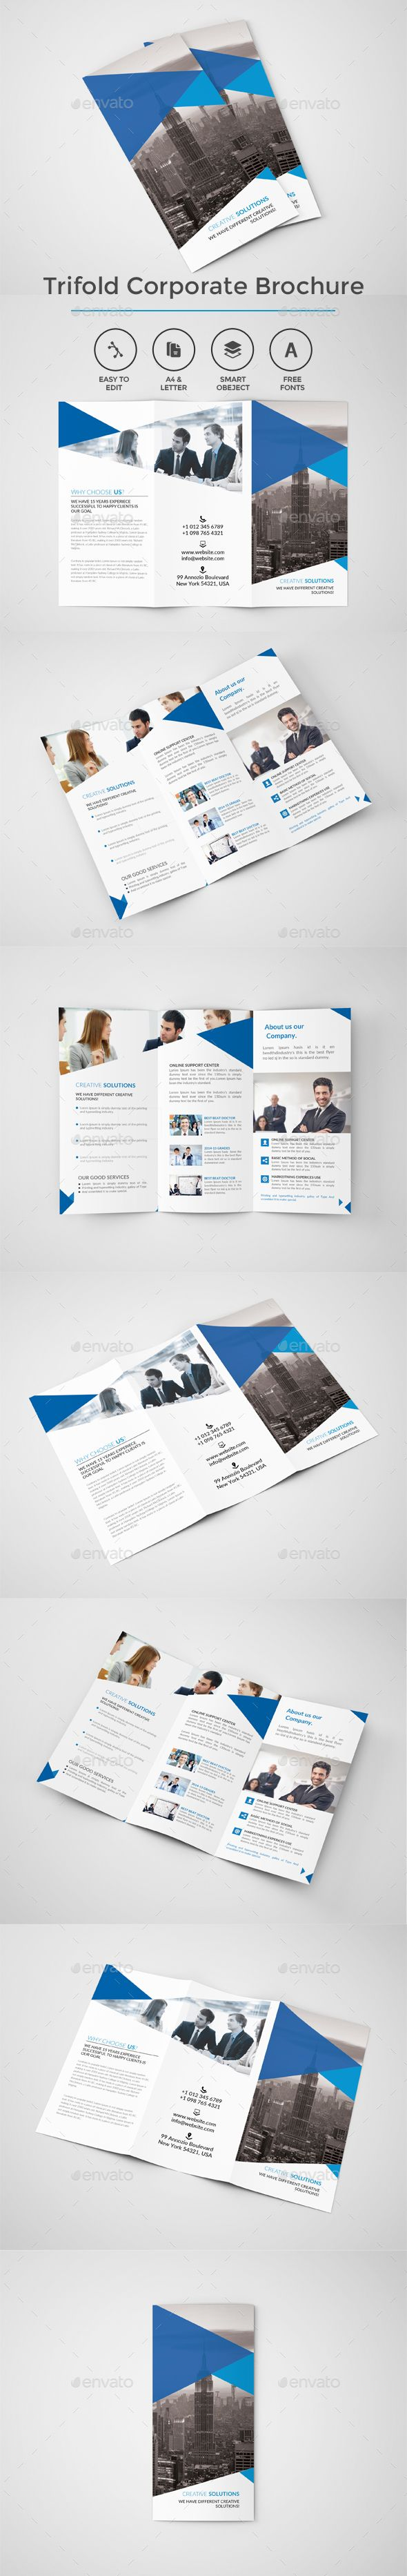 Creative Trifold Brochure Template PSD. Download here: http://graphicriver.net/item/creative-trifold-brochure/14582335?ref=ksioks